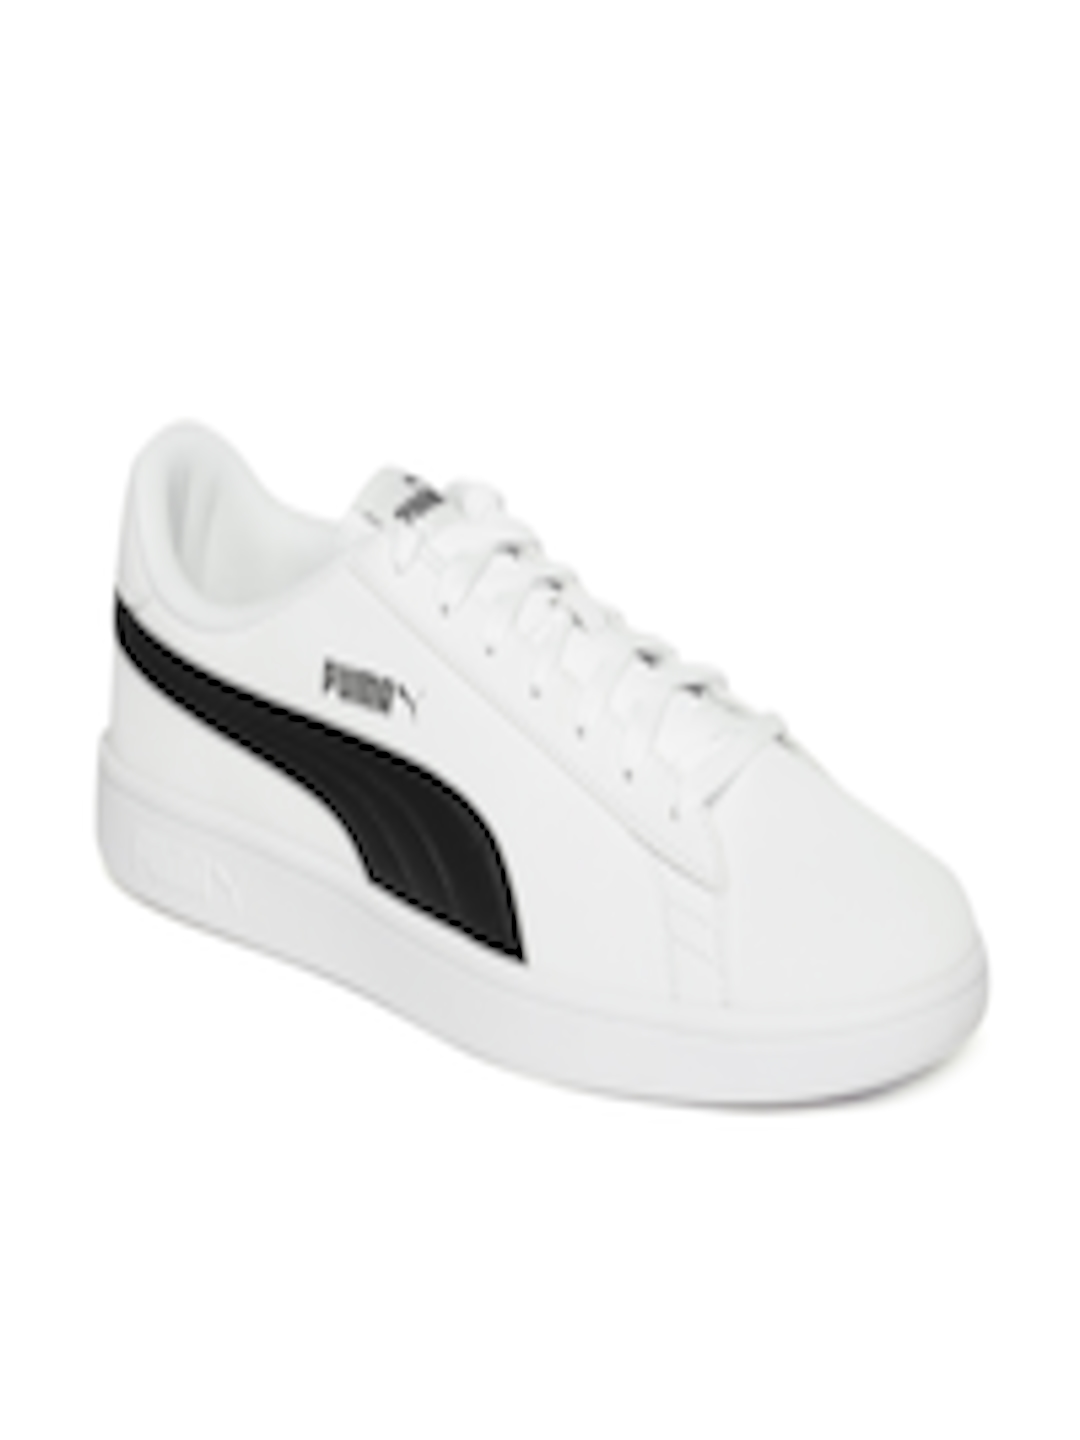 c88f4272287 Buy Puma Unisex White Smash V2 Buck Sneakers - Casual Shoes for Unisex  7252383